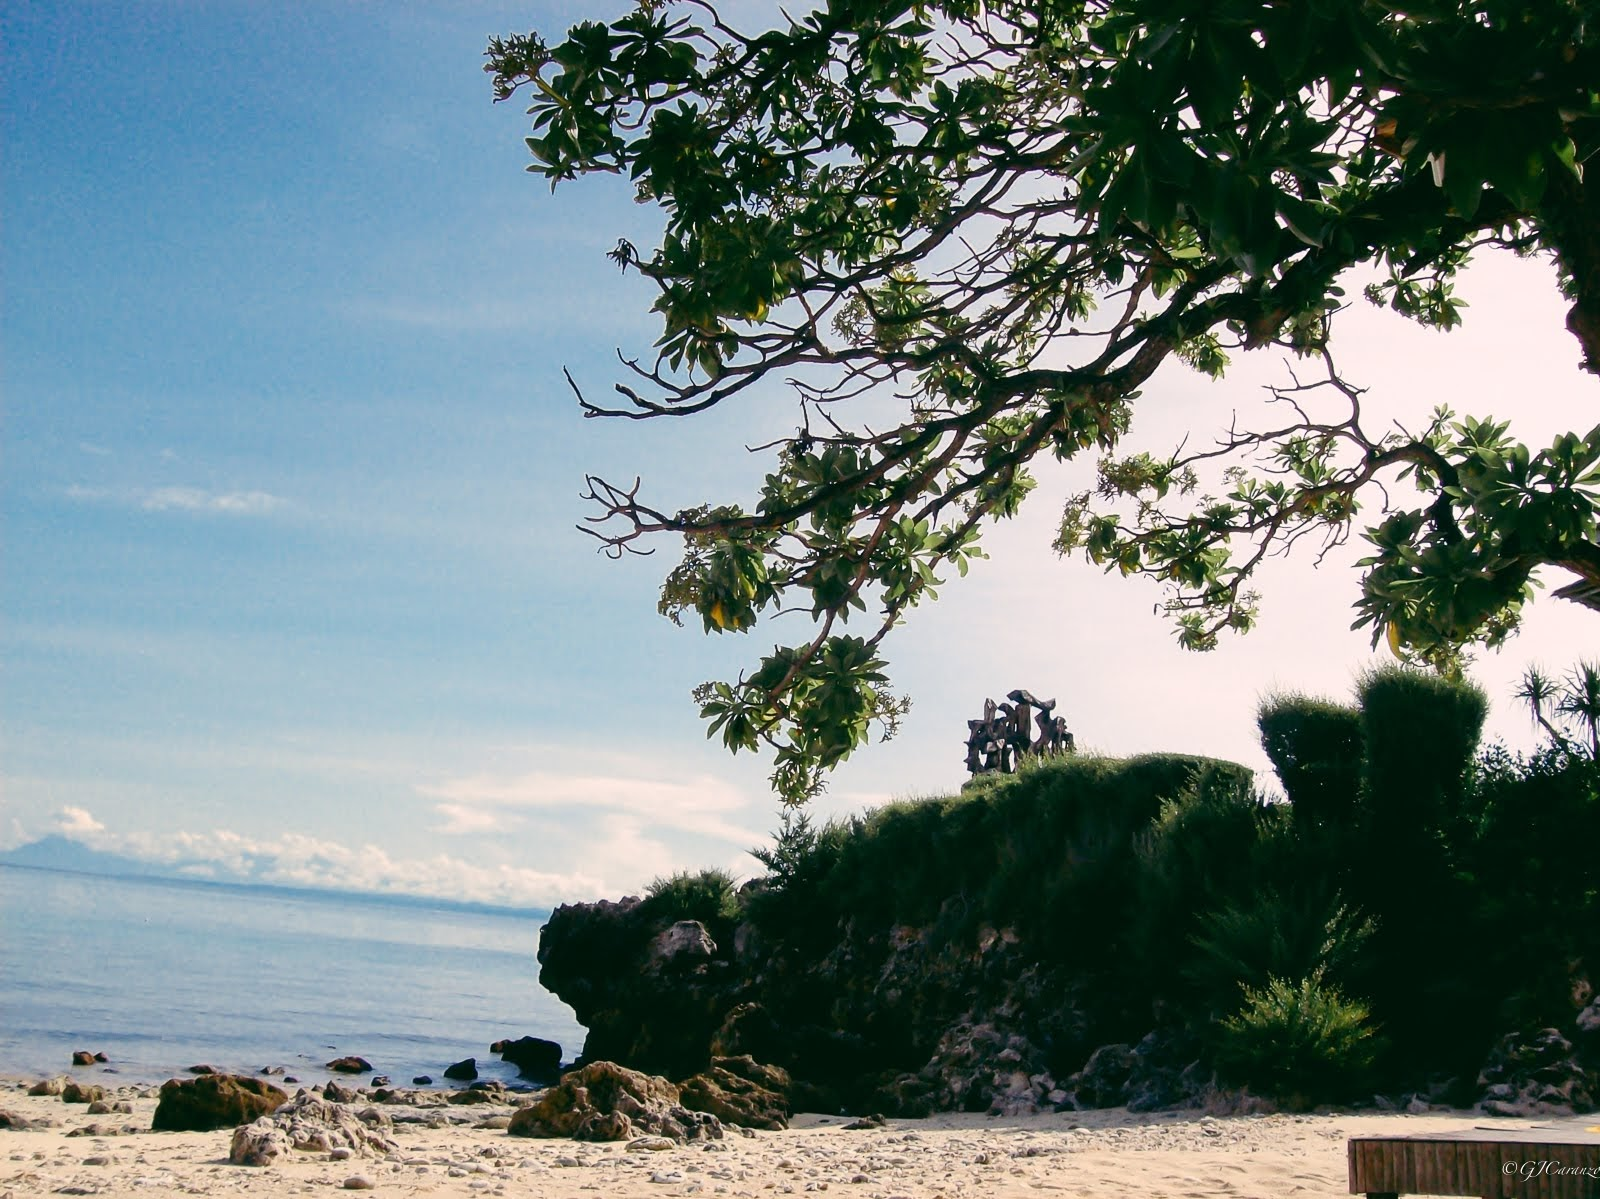 Malapascua Island, Philippines: A Travel Guide